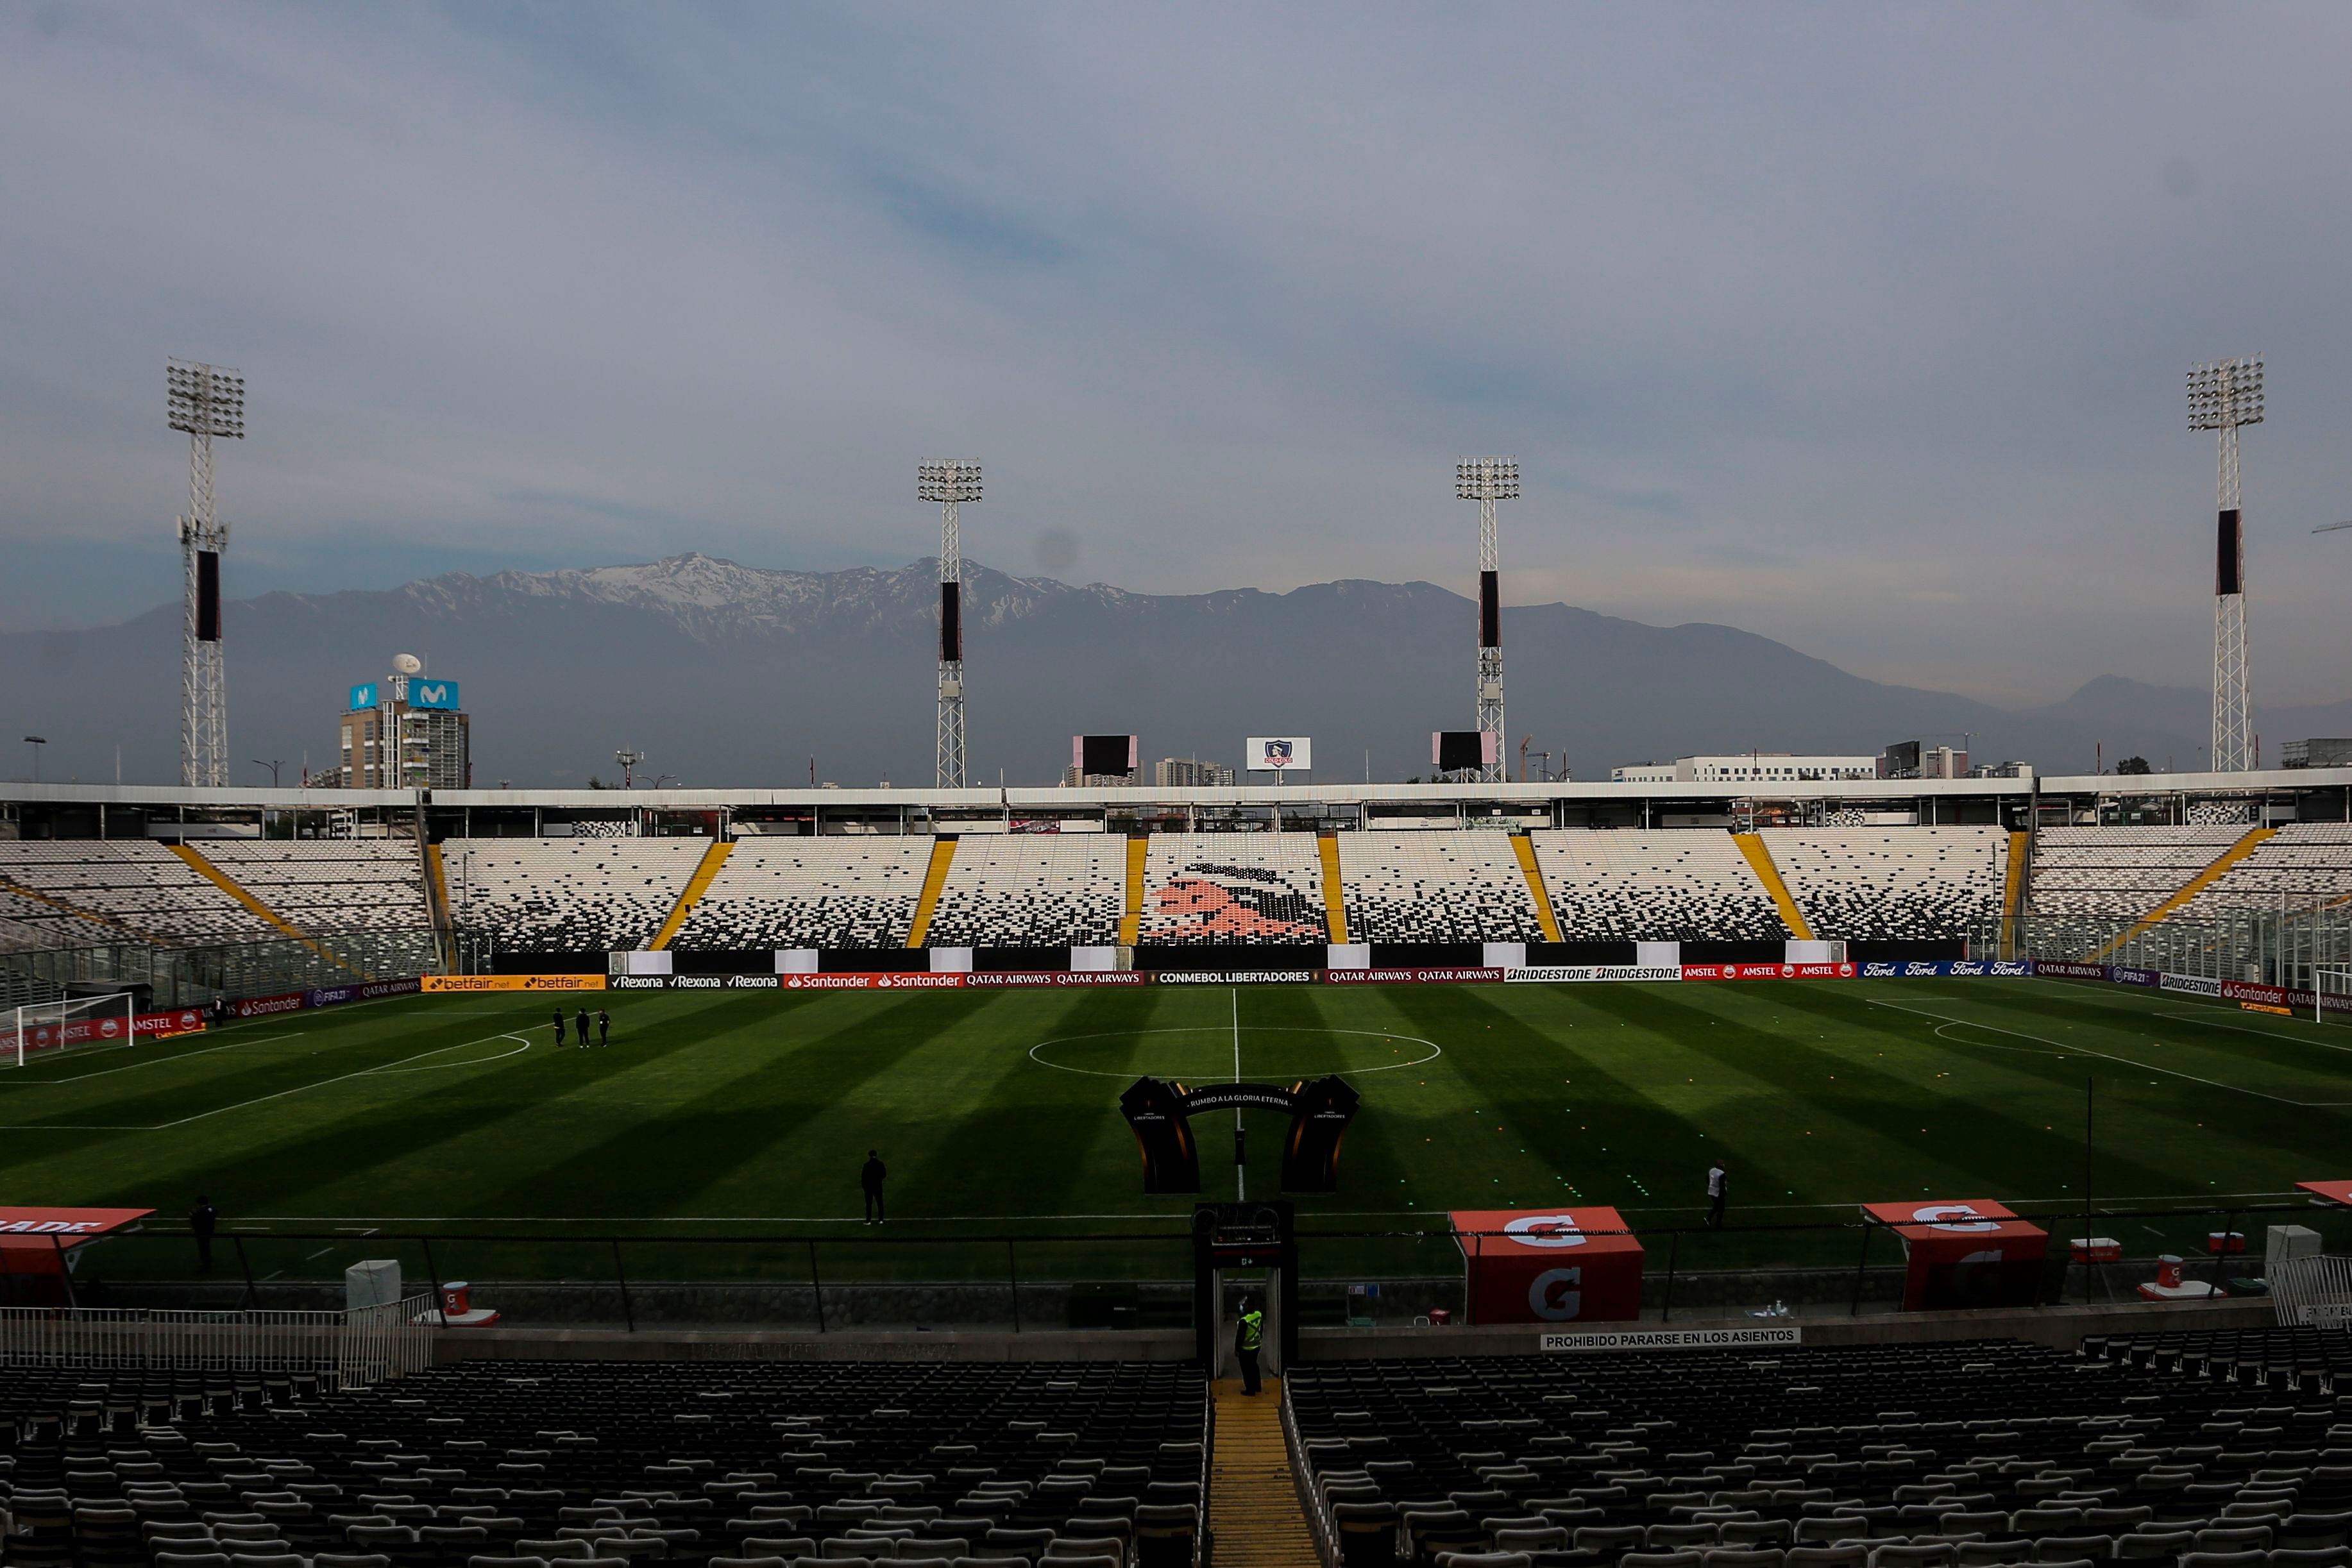 South American football giant Colo-Colo narrowly avoids relegation after nerve-shredding playoff